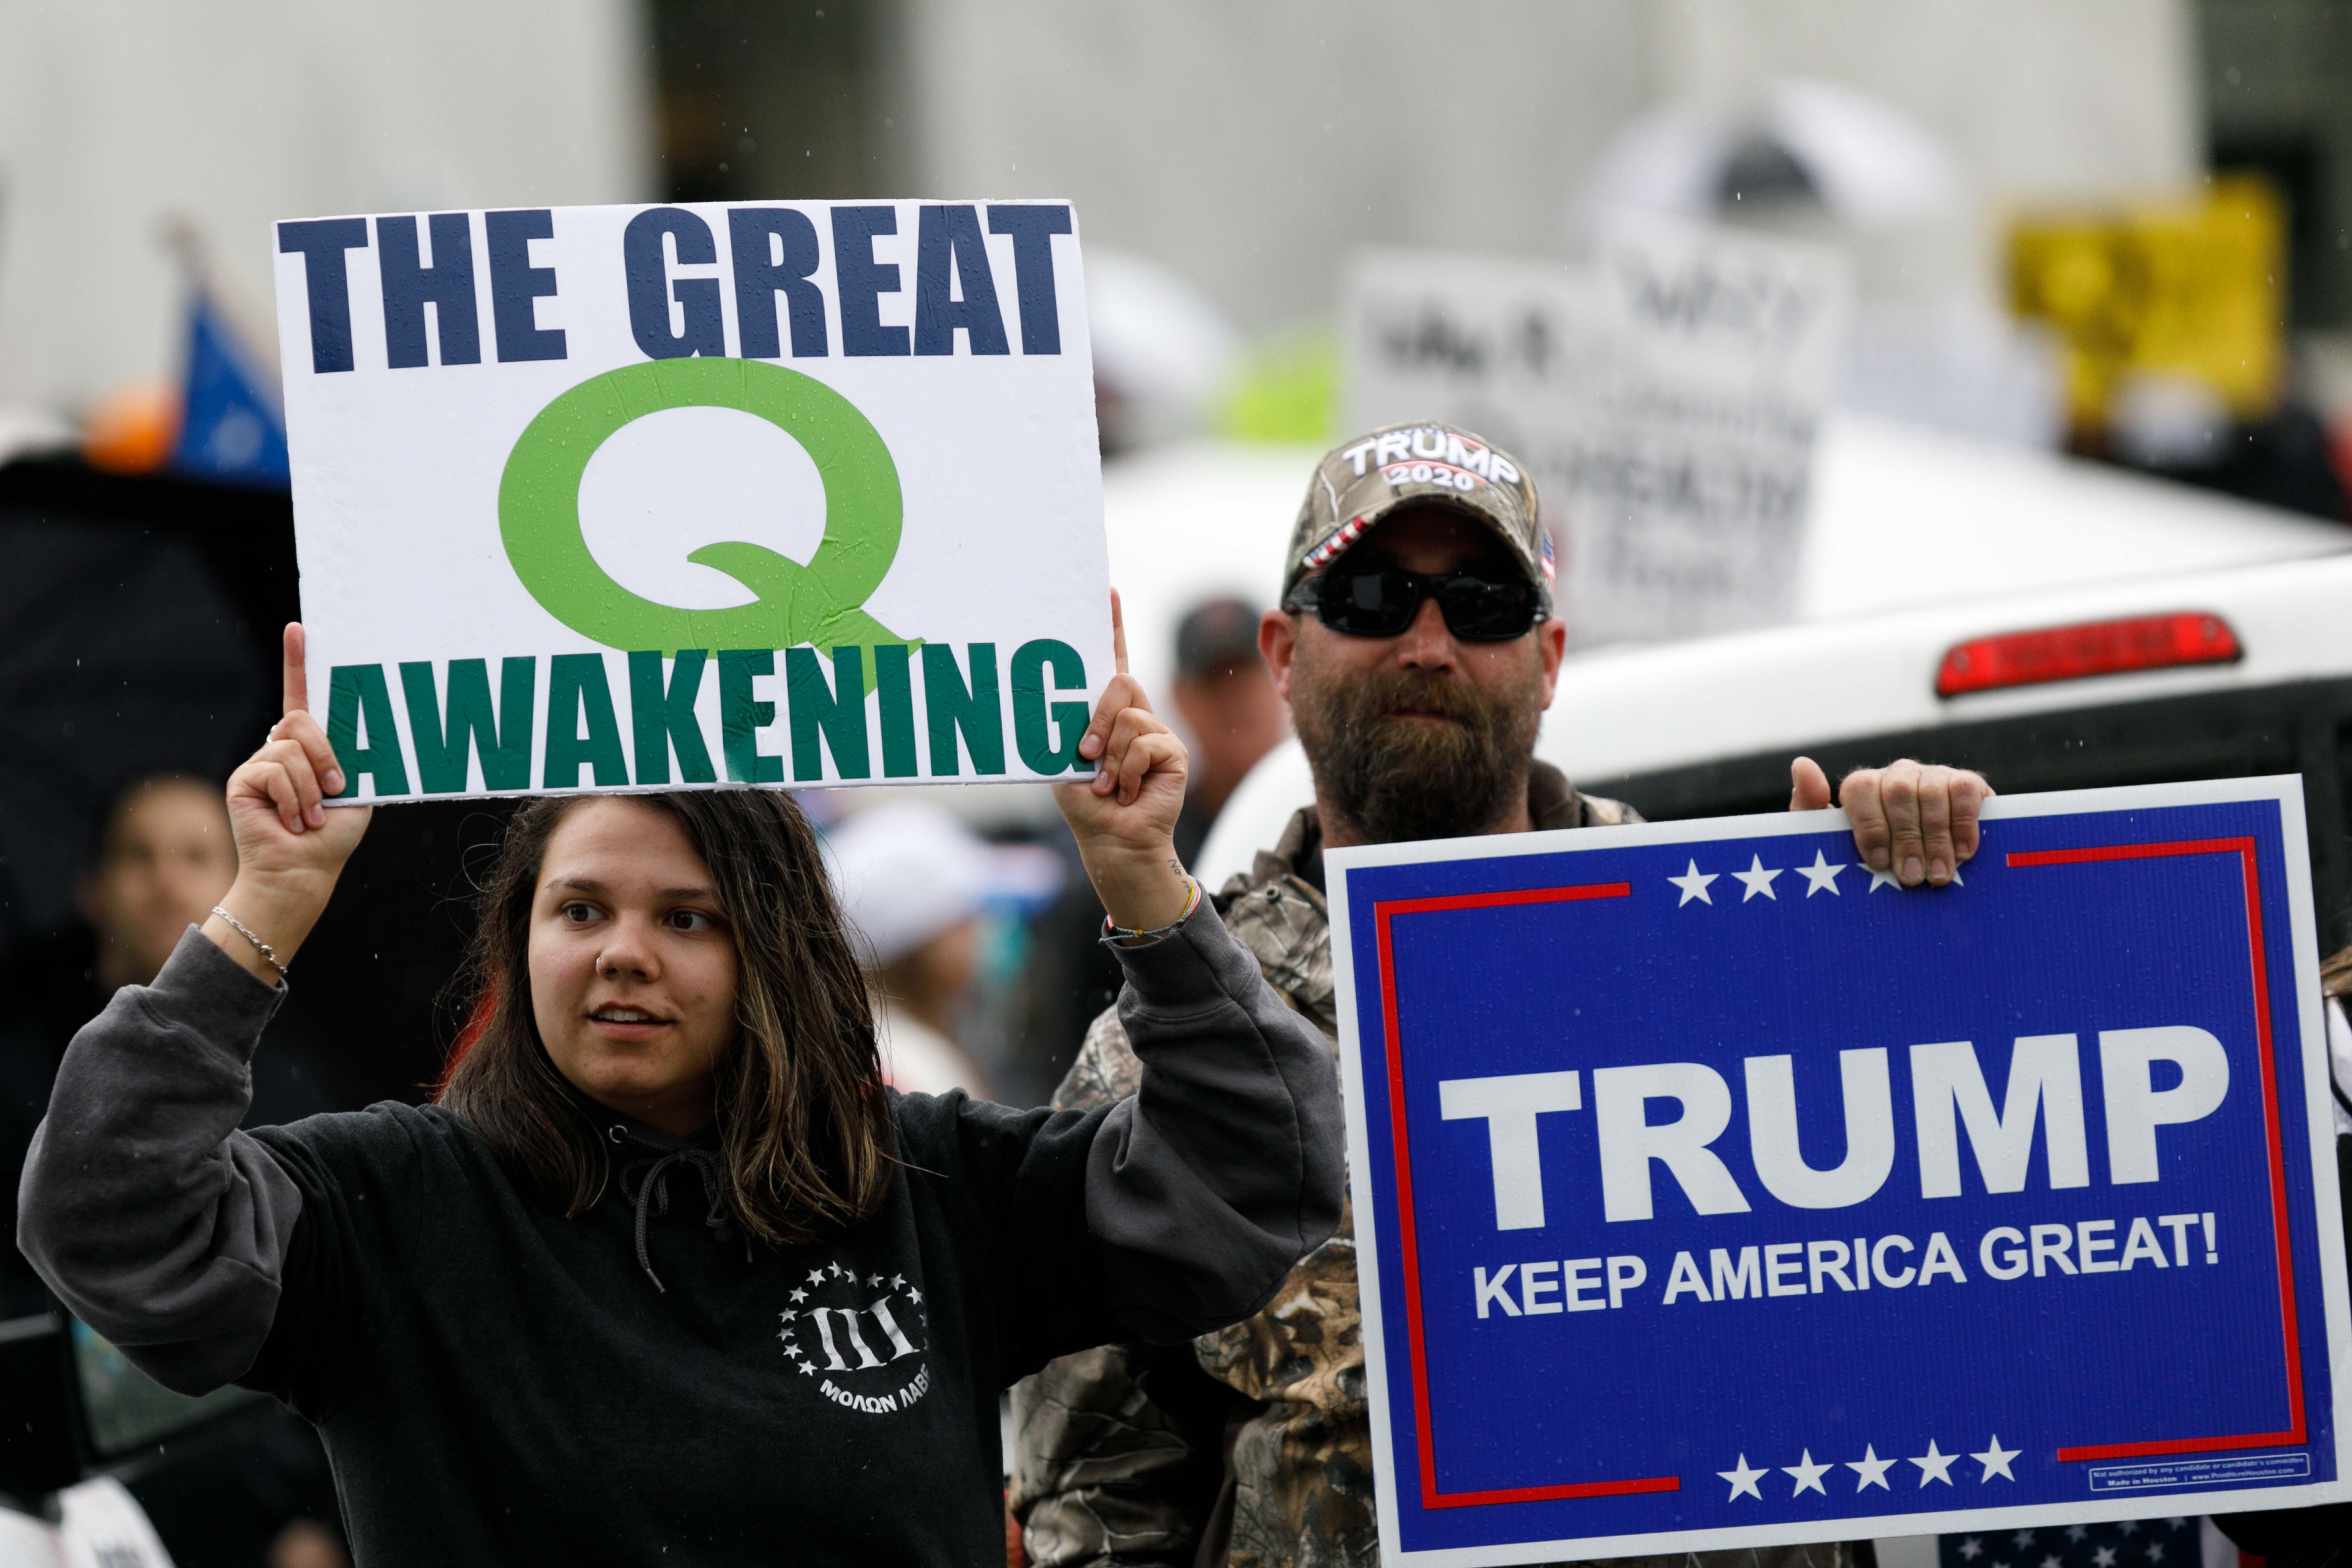 Q-Anon conspiracy theorists hold signs during the protest at the State Capitol in Salem, Oregon, United States on May 2, 2020. (John Rudoff/Anadolu Agency via Getty Images)